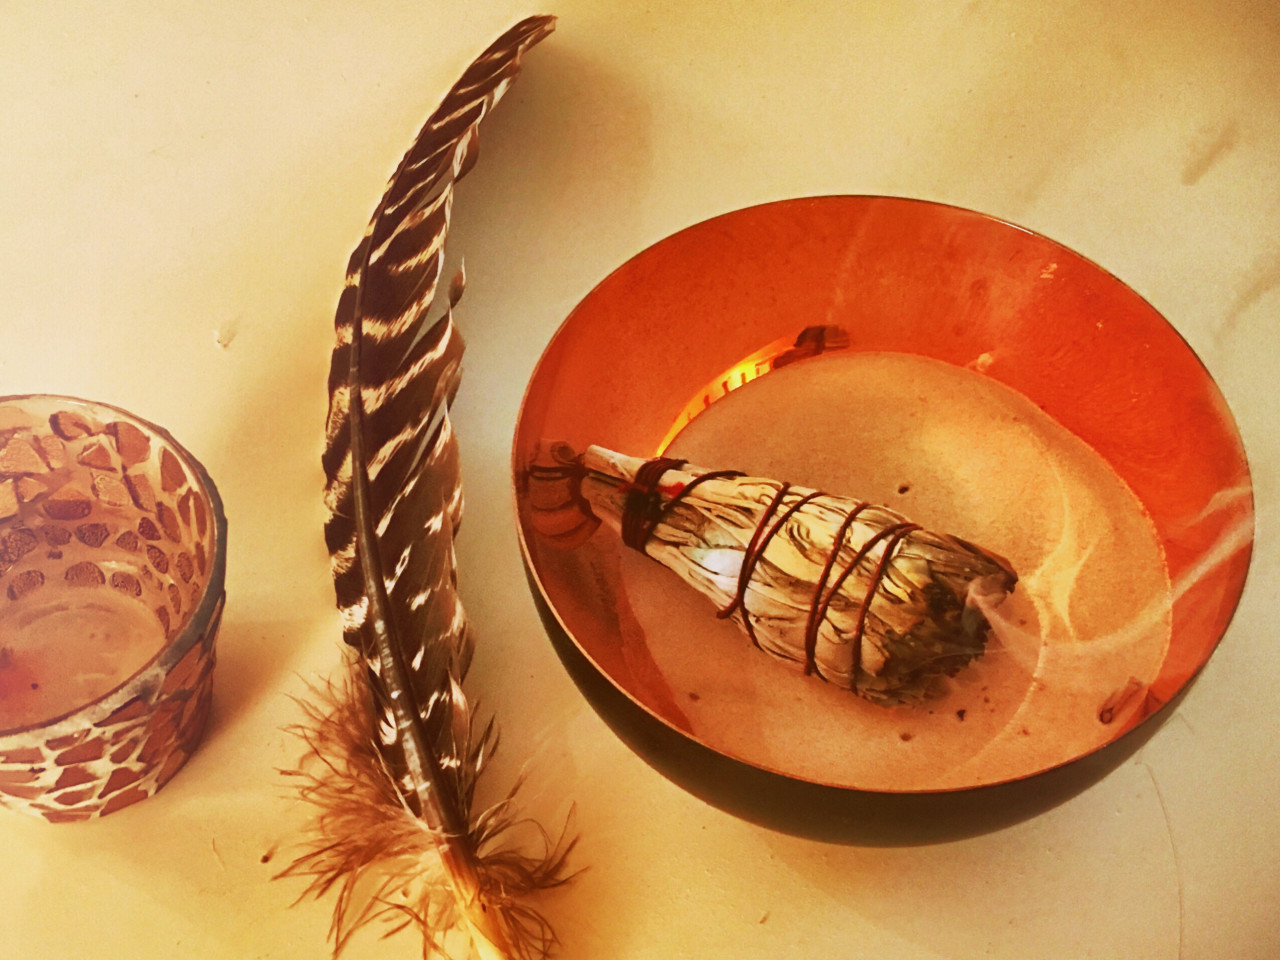 The Benefits Of Burning Sage, White Sage Smudge Sticks, Sage, White Sage, Burning Sage, Smudging